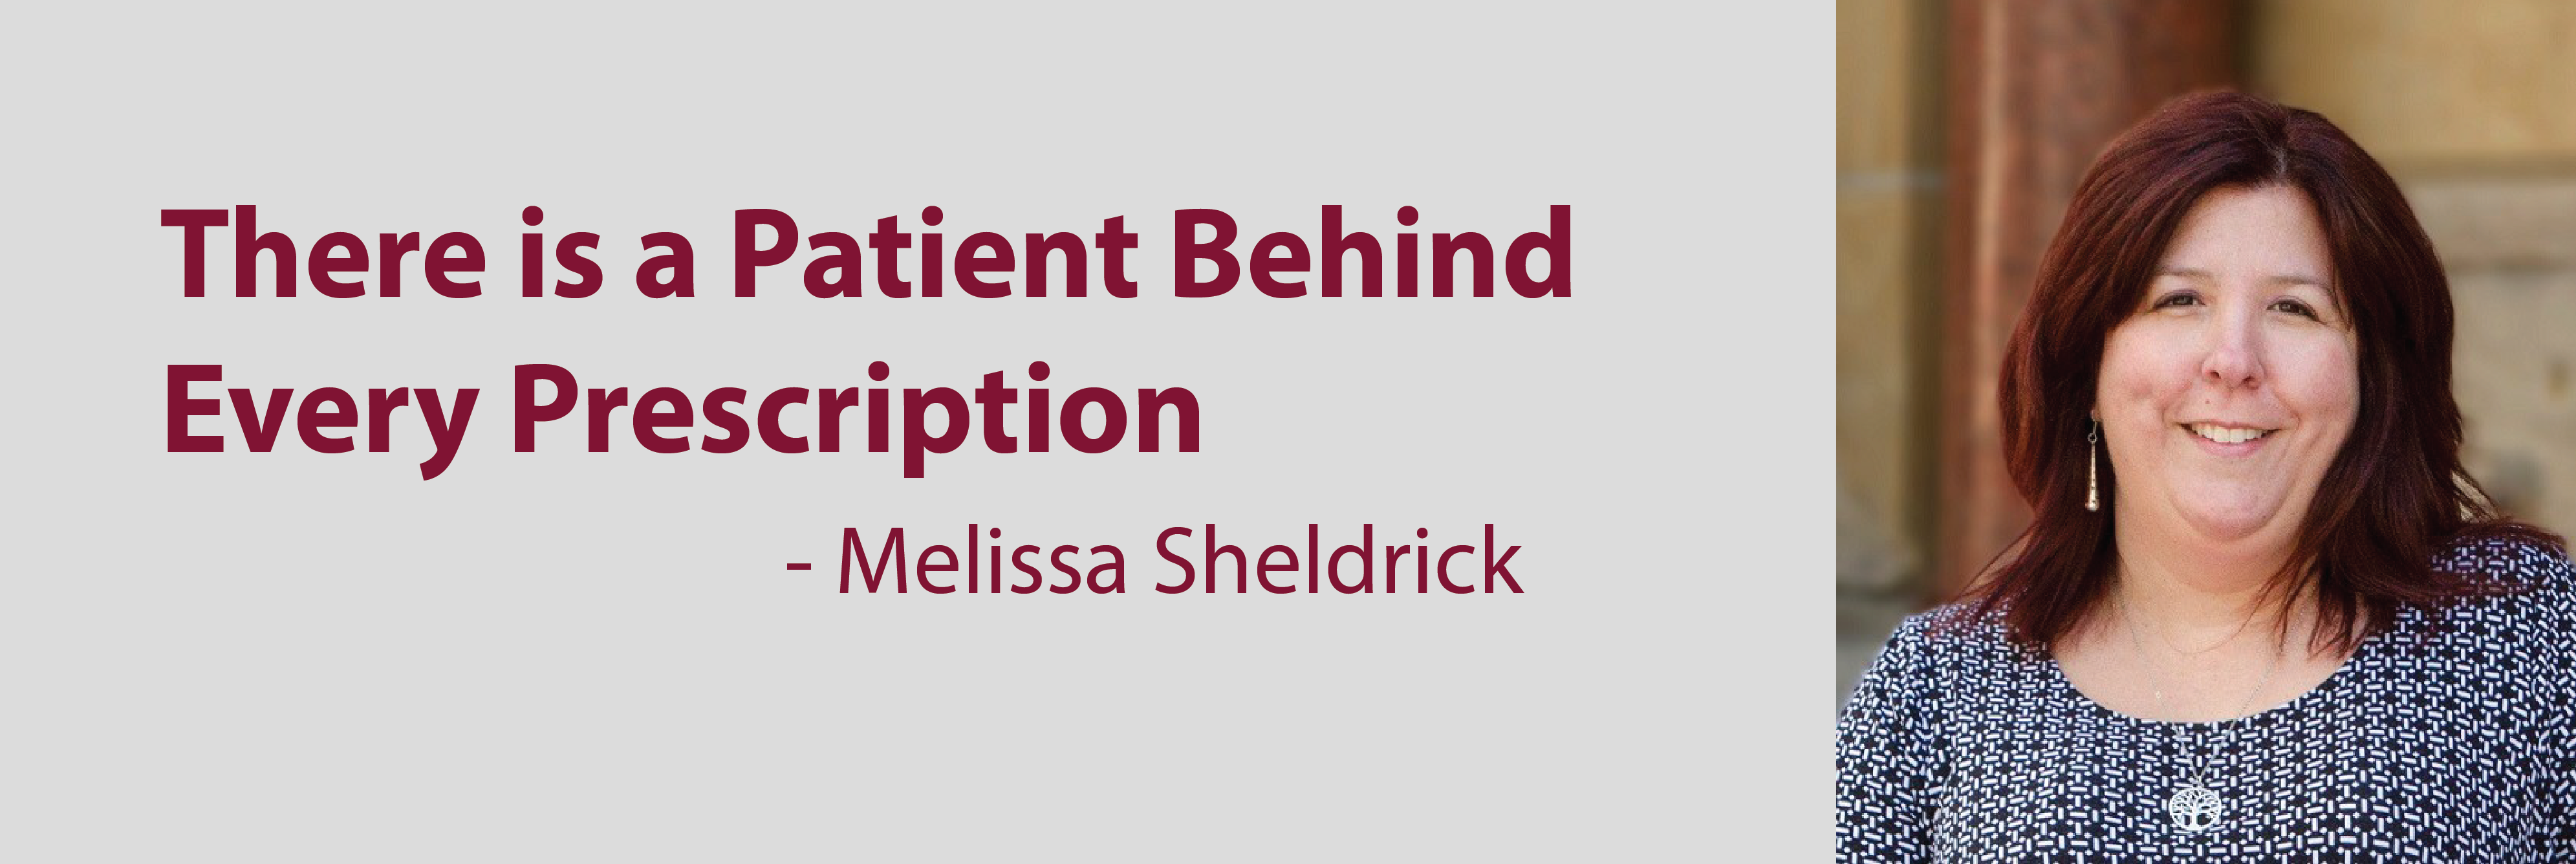 Melissa Sheldrick. There is a patient behind every prescription.